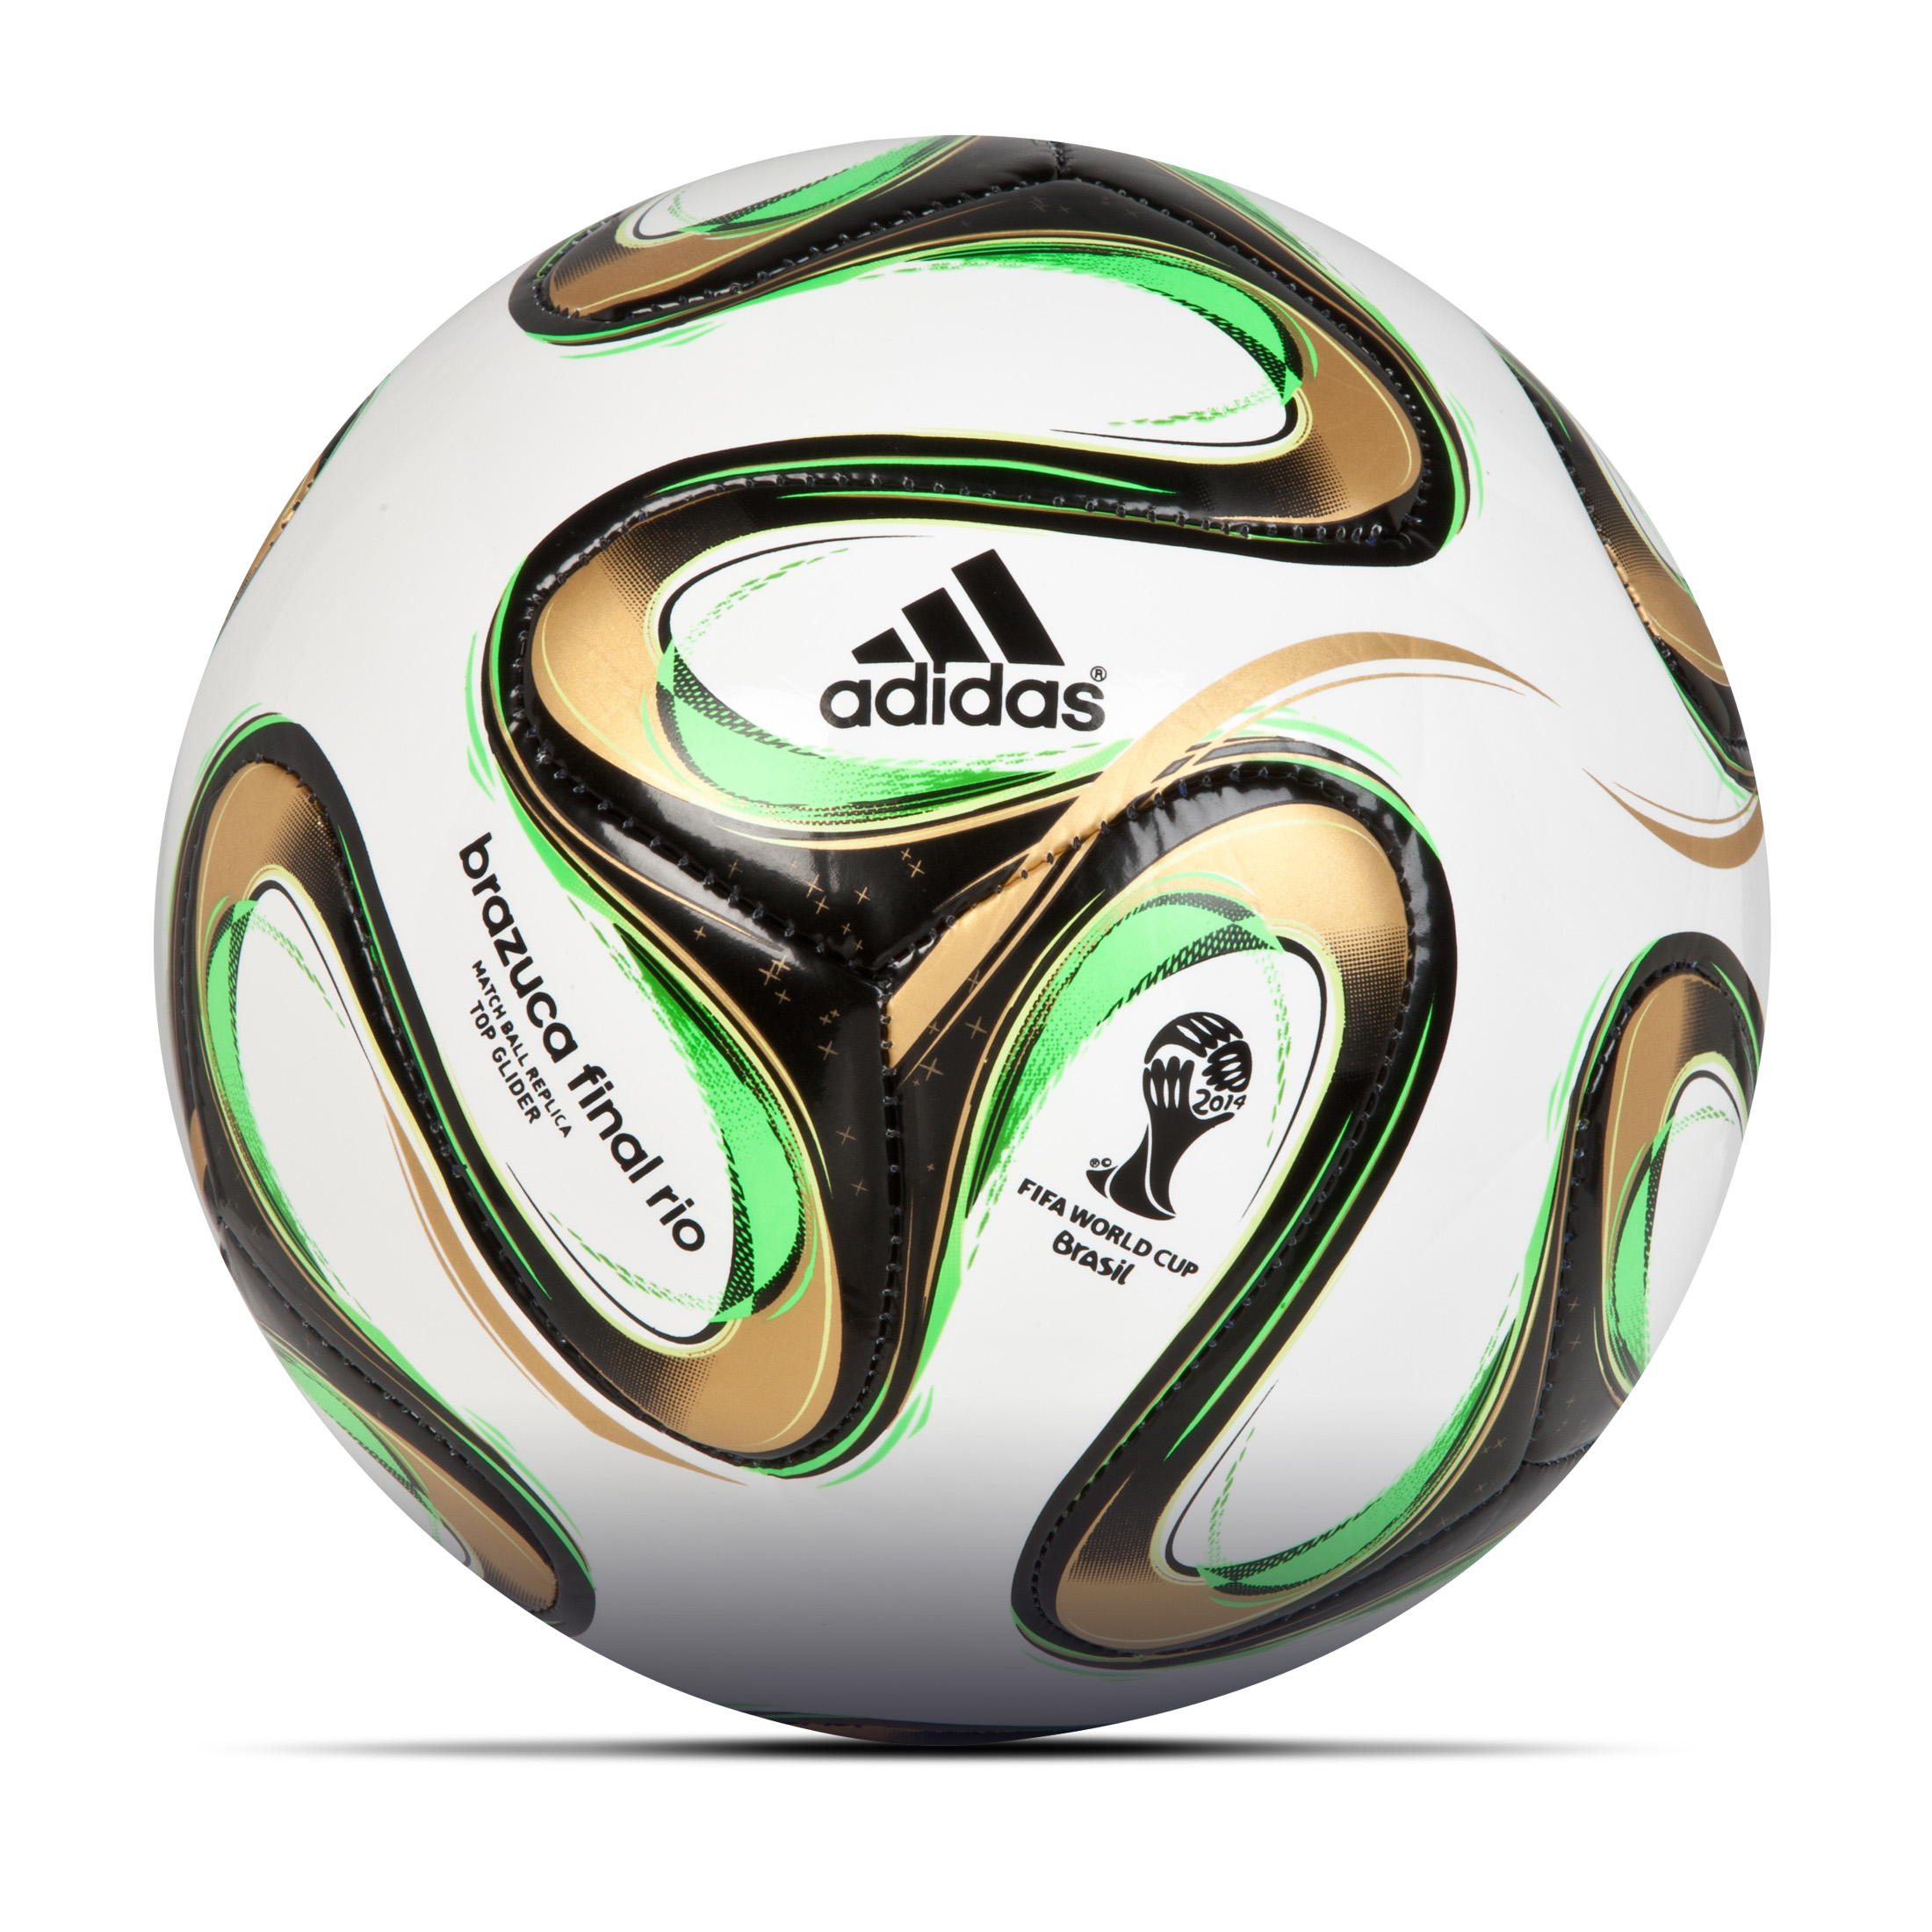 Adidas Brazuca World Cup 2014 Final Top Glider Football